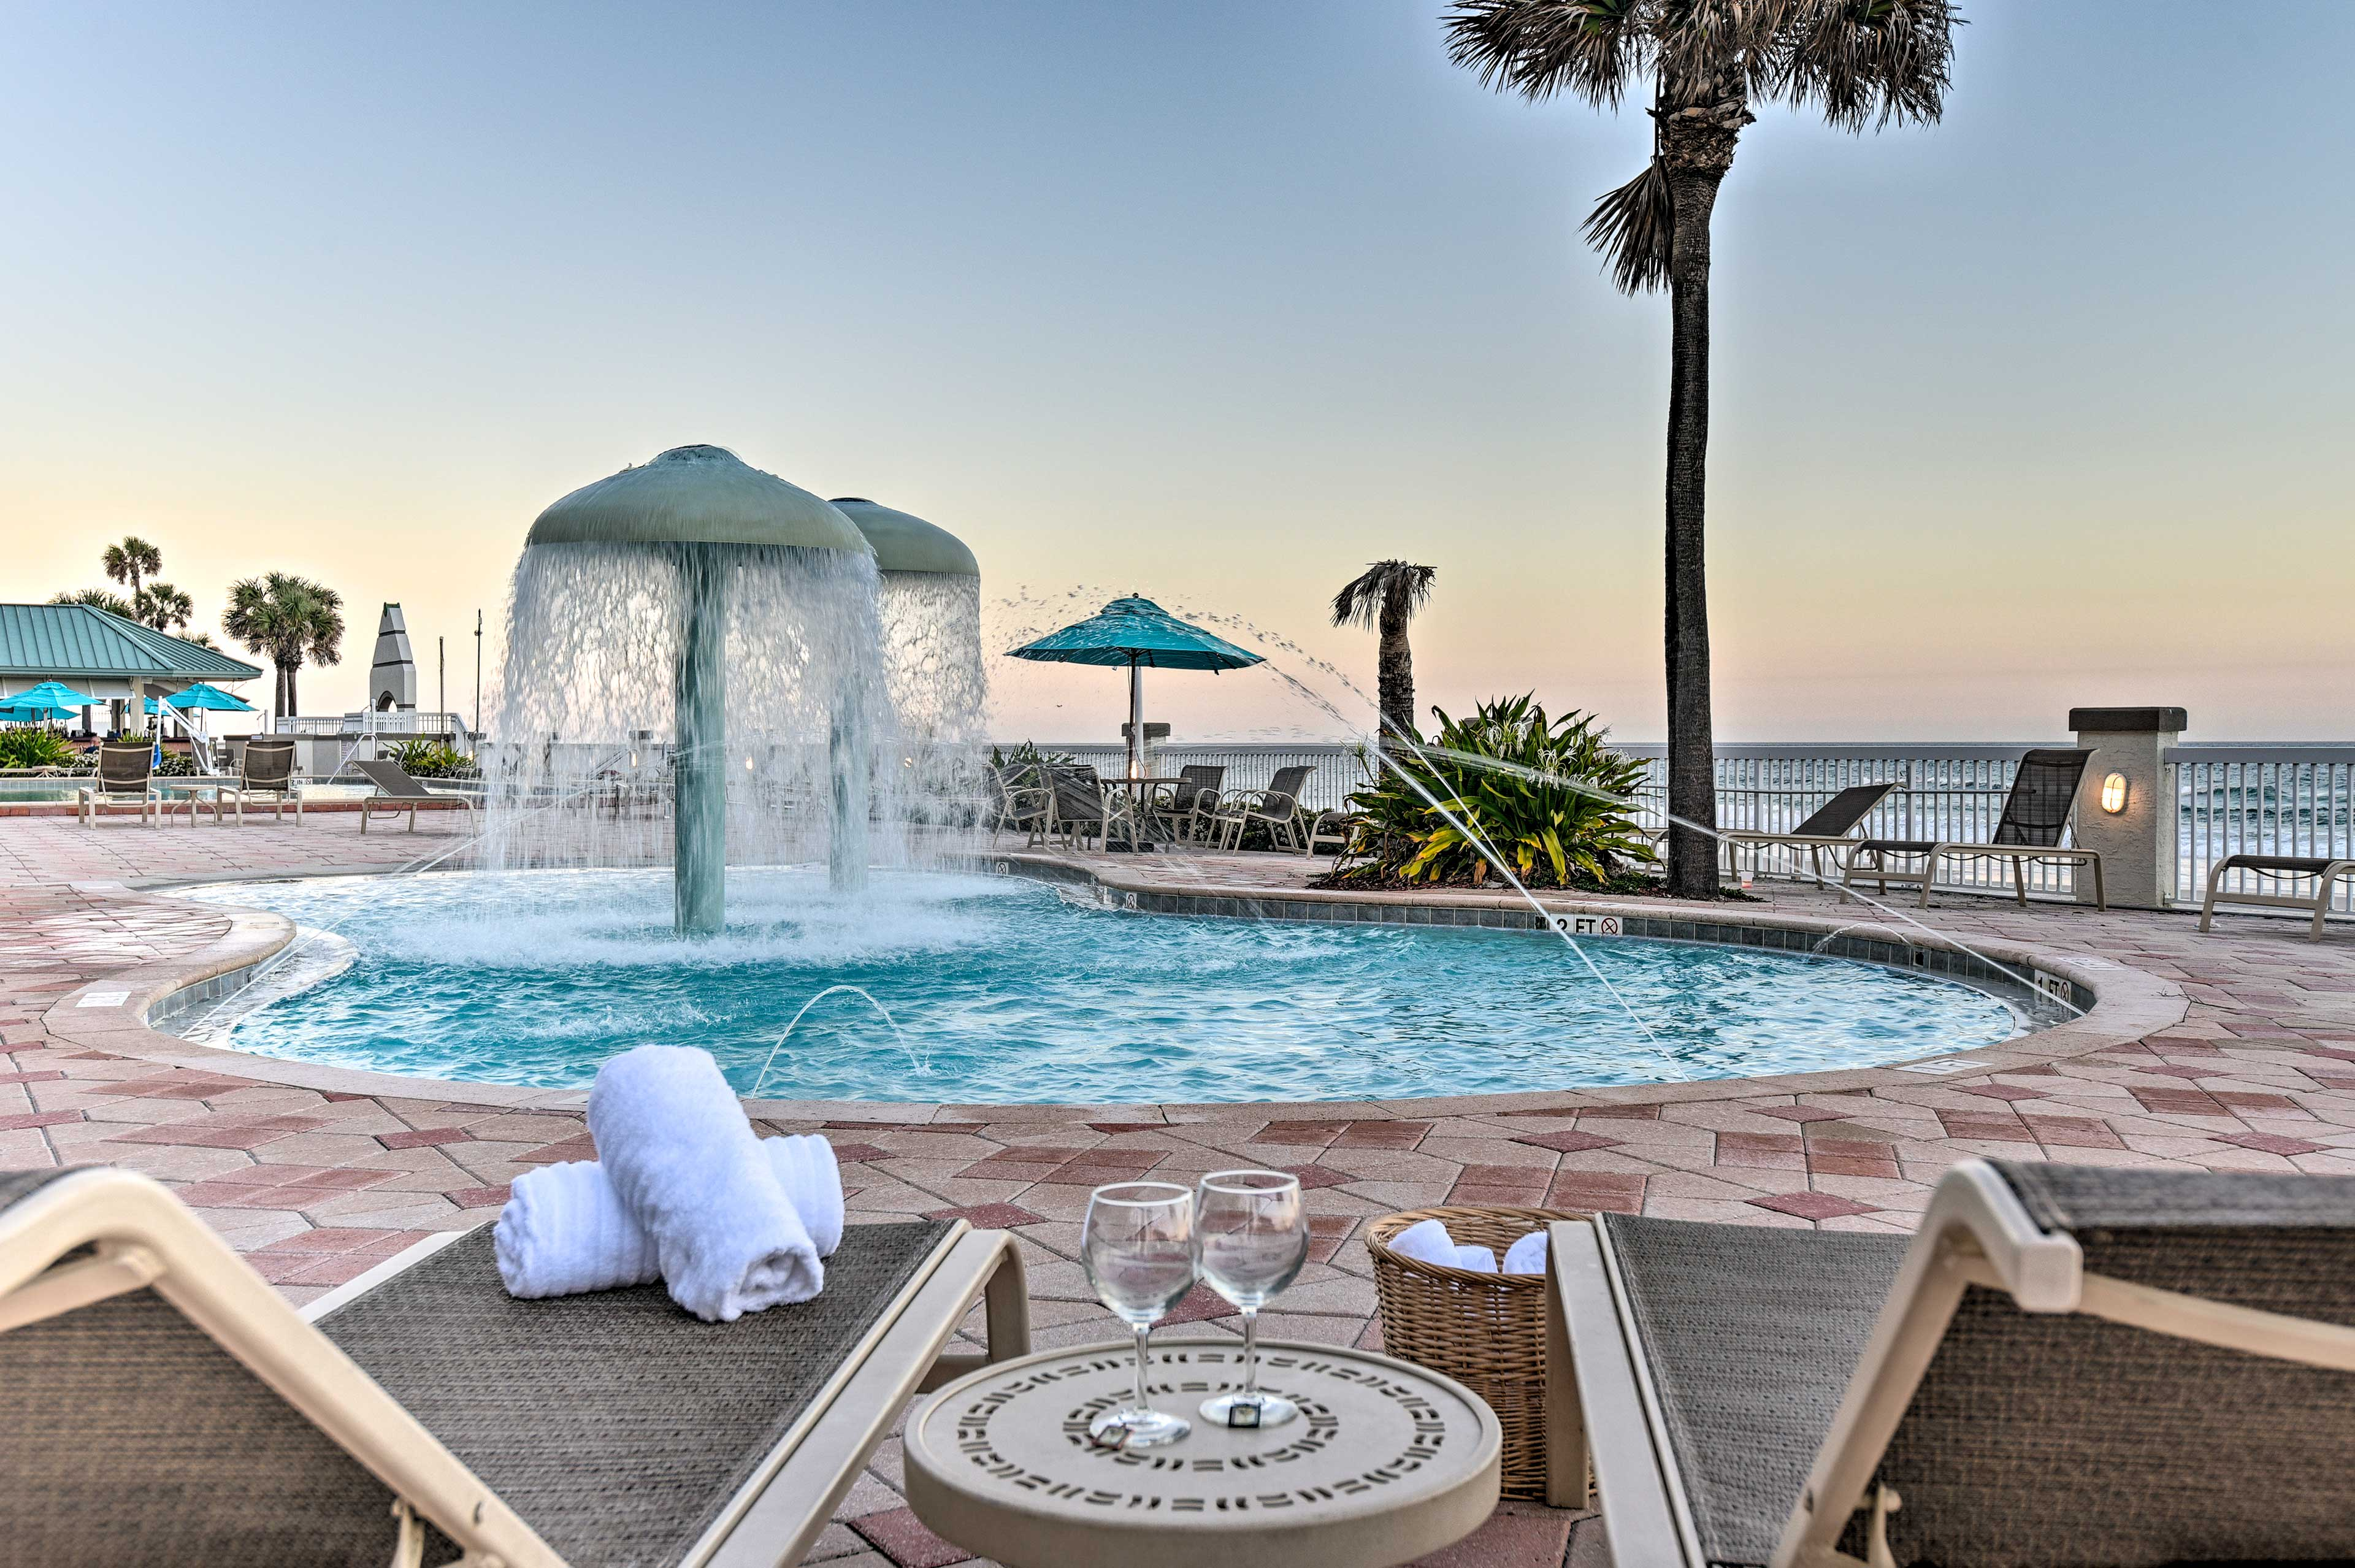 The studio is located at the Daytona Beach Resort and Conference Center.